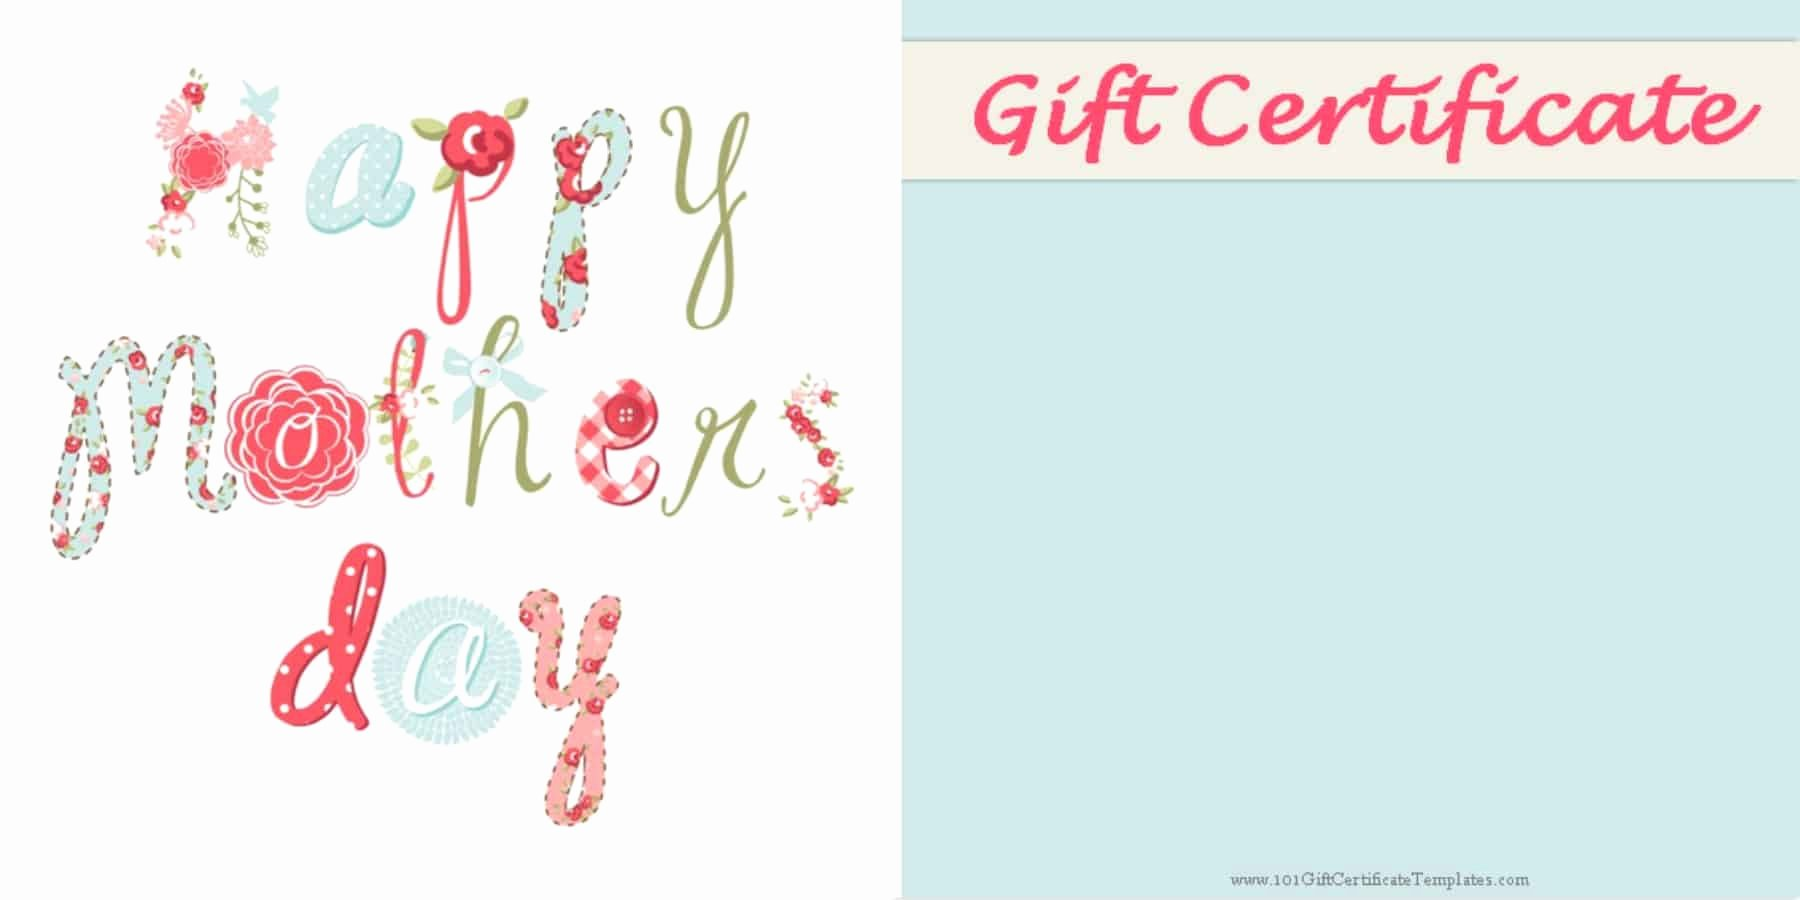 Father's Day Gift Certificate Template Unique Mother S Day Gift Certificate Templates